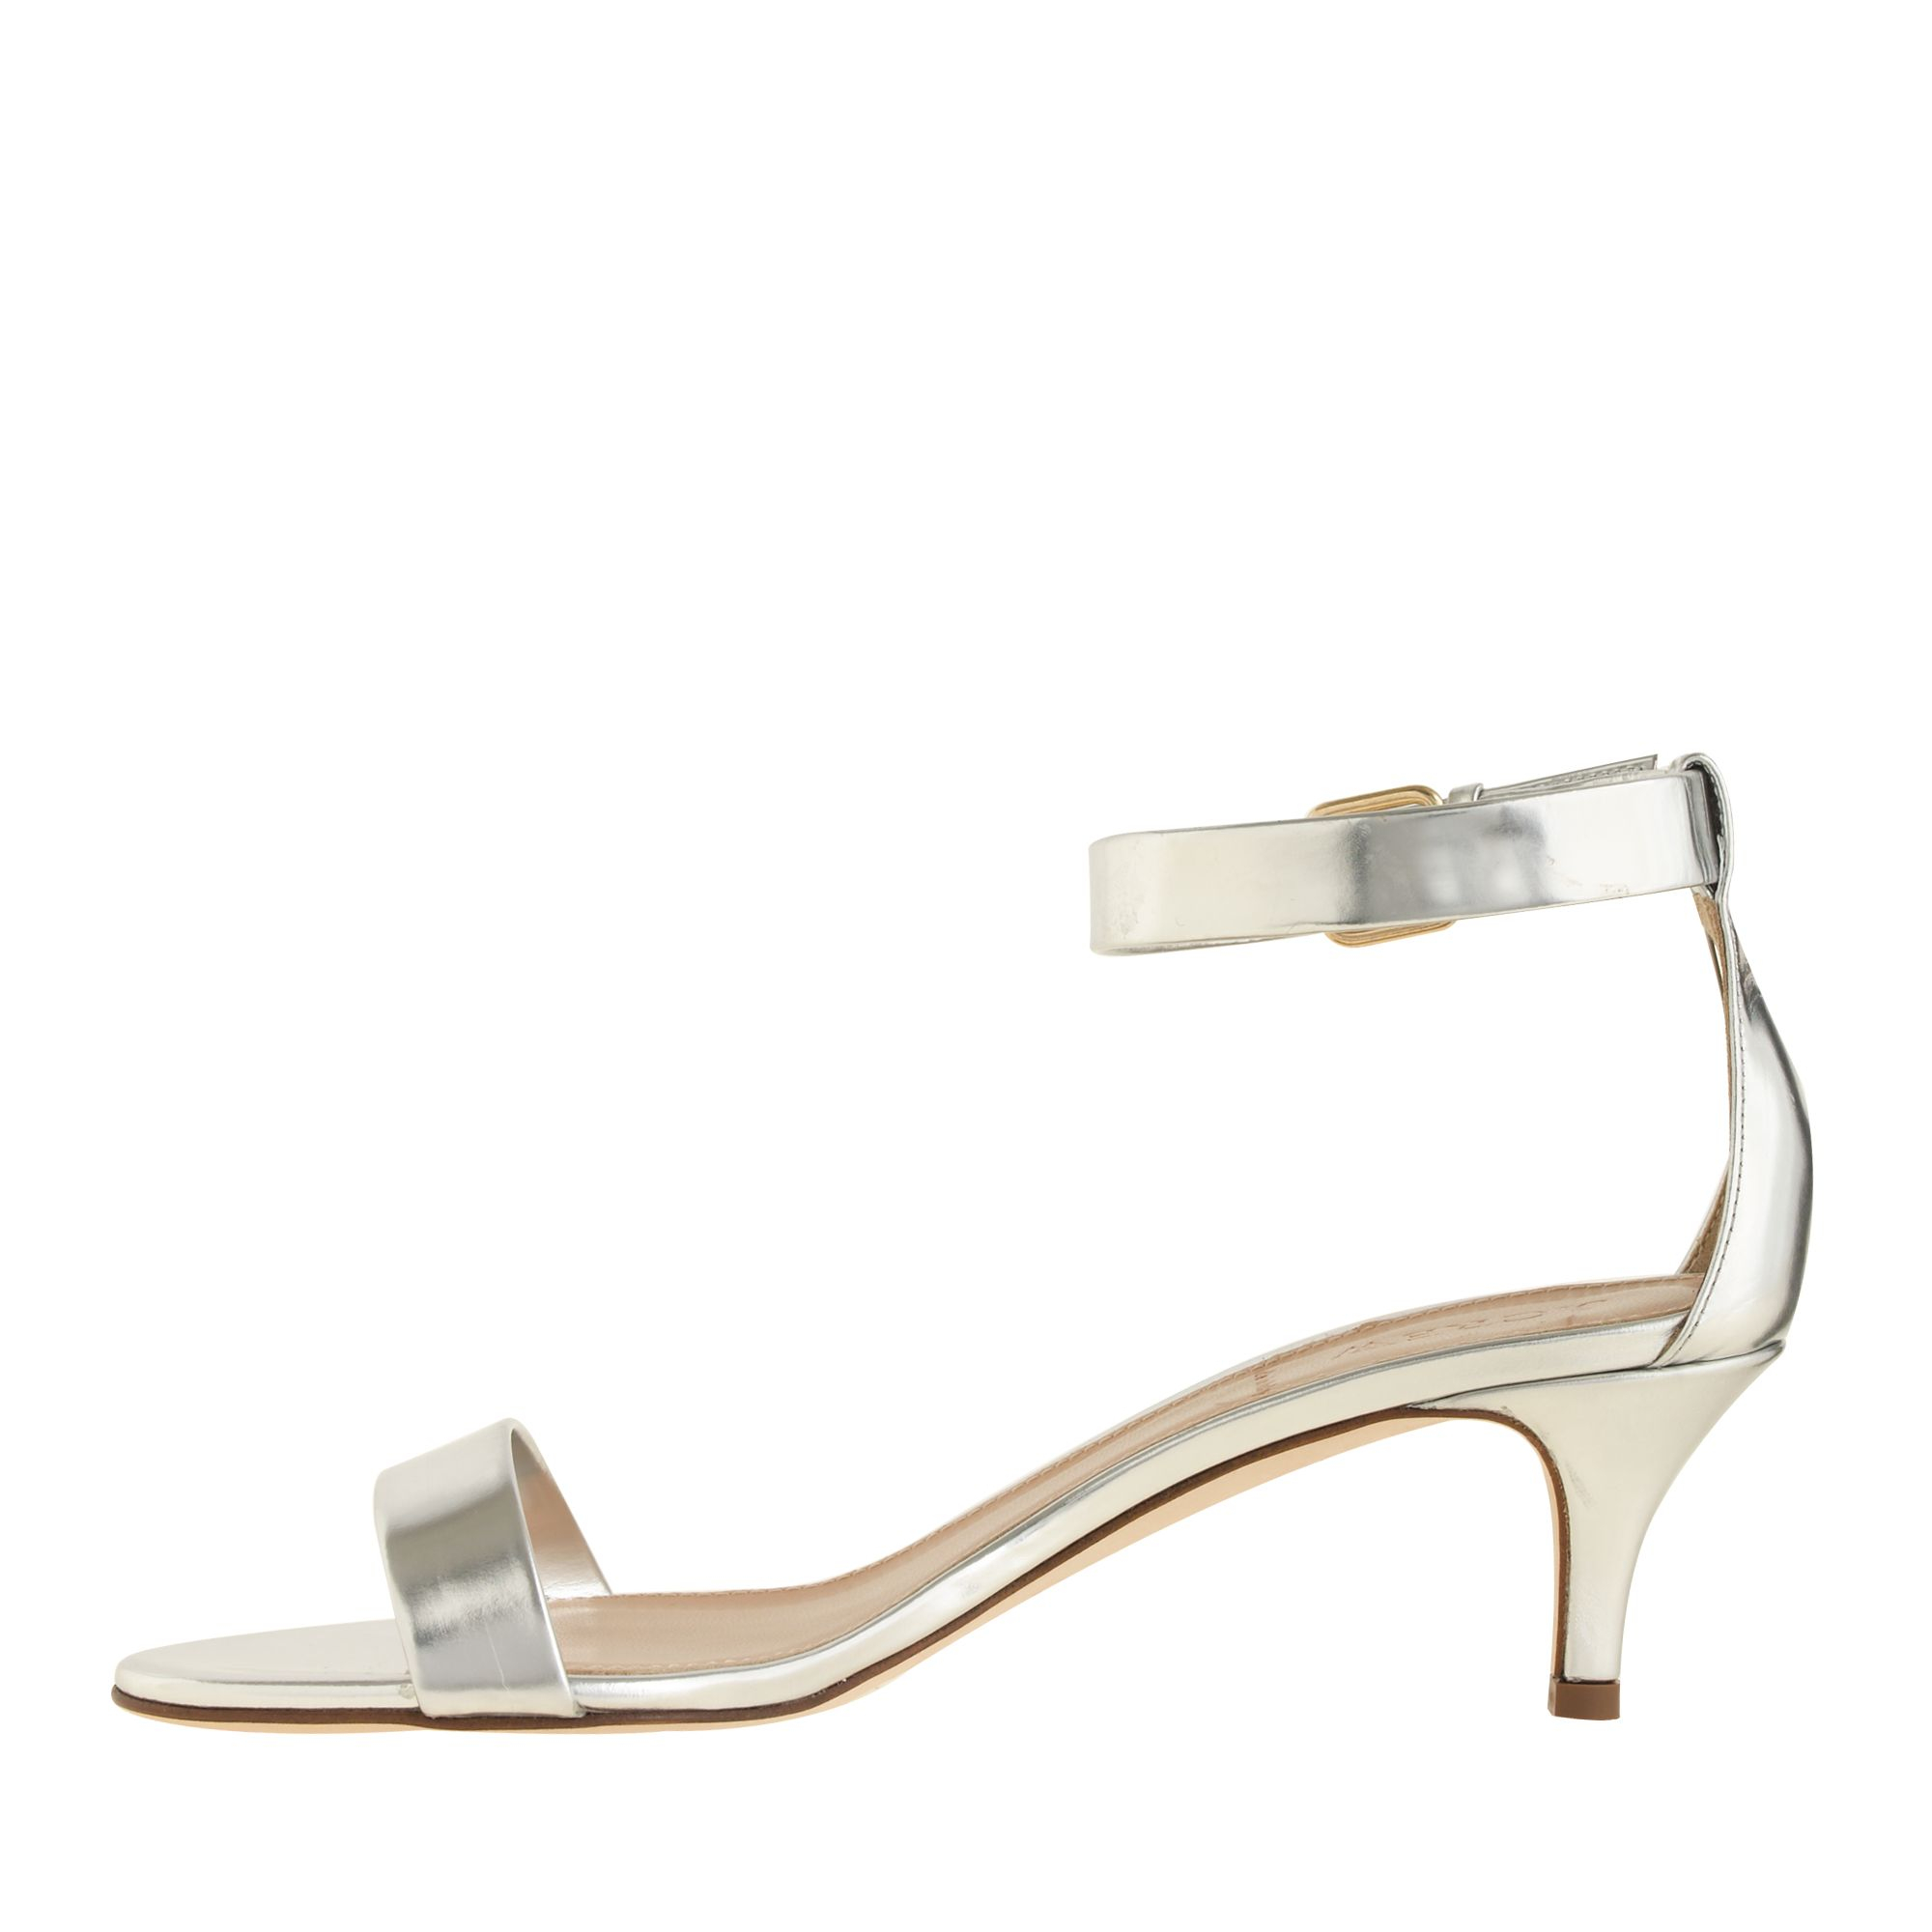 Silver Sandals Kitten Heel - Is Heel